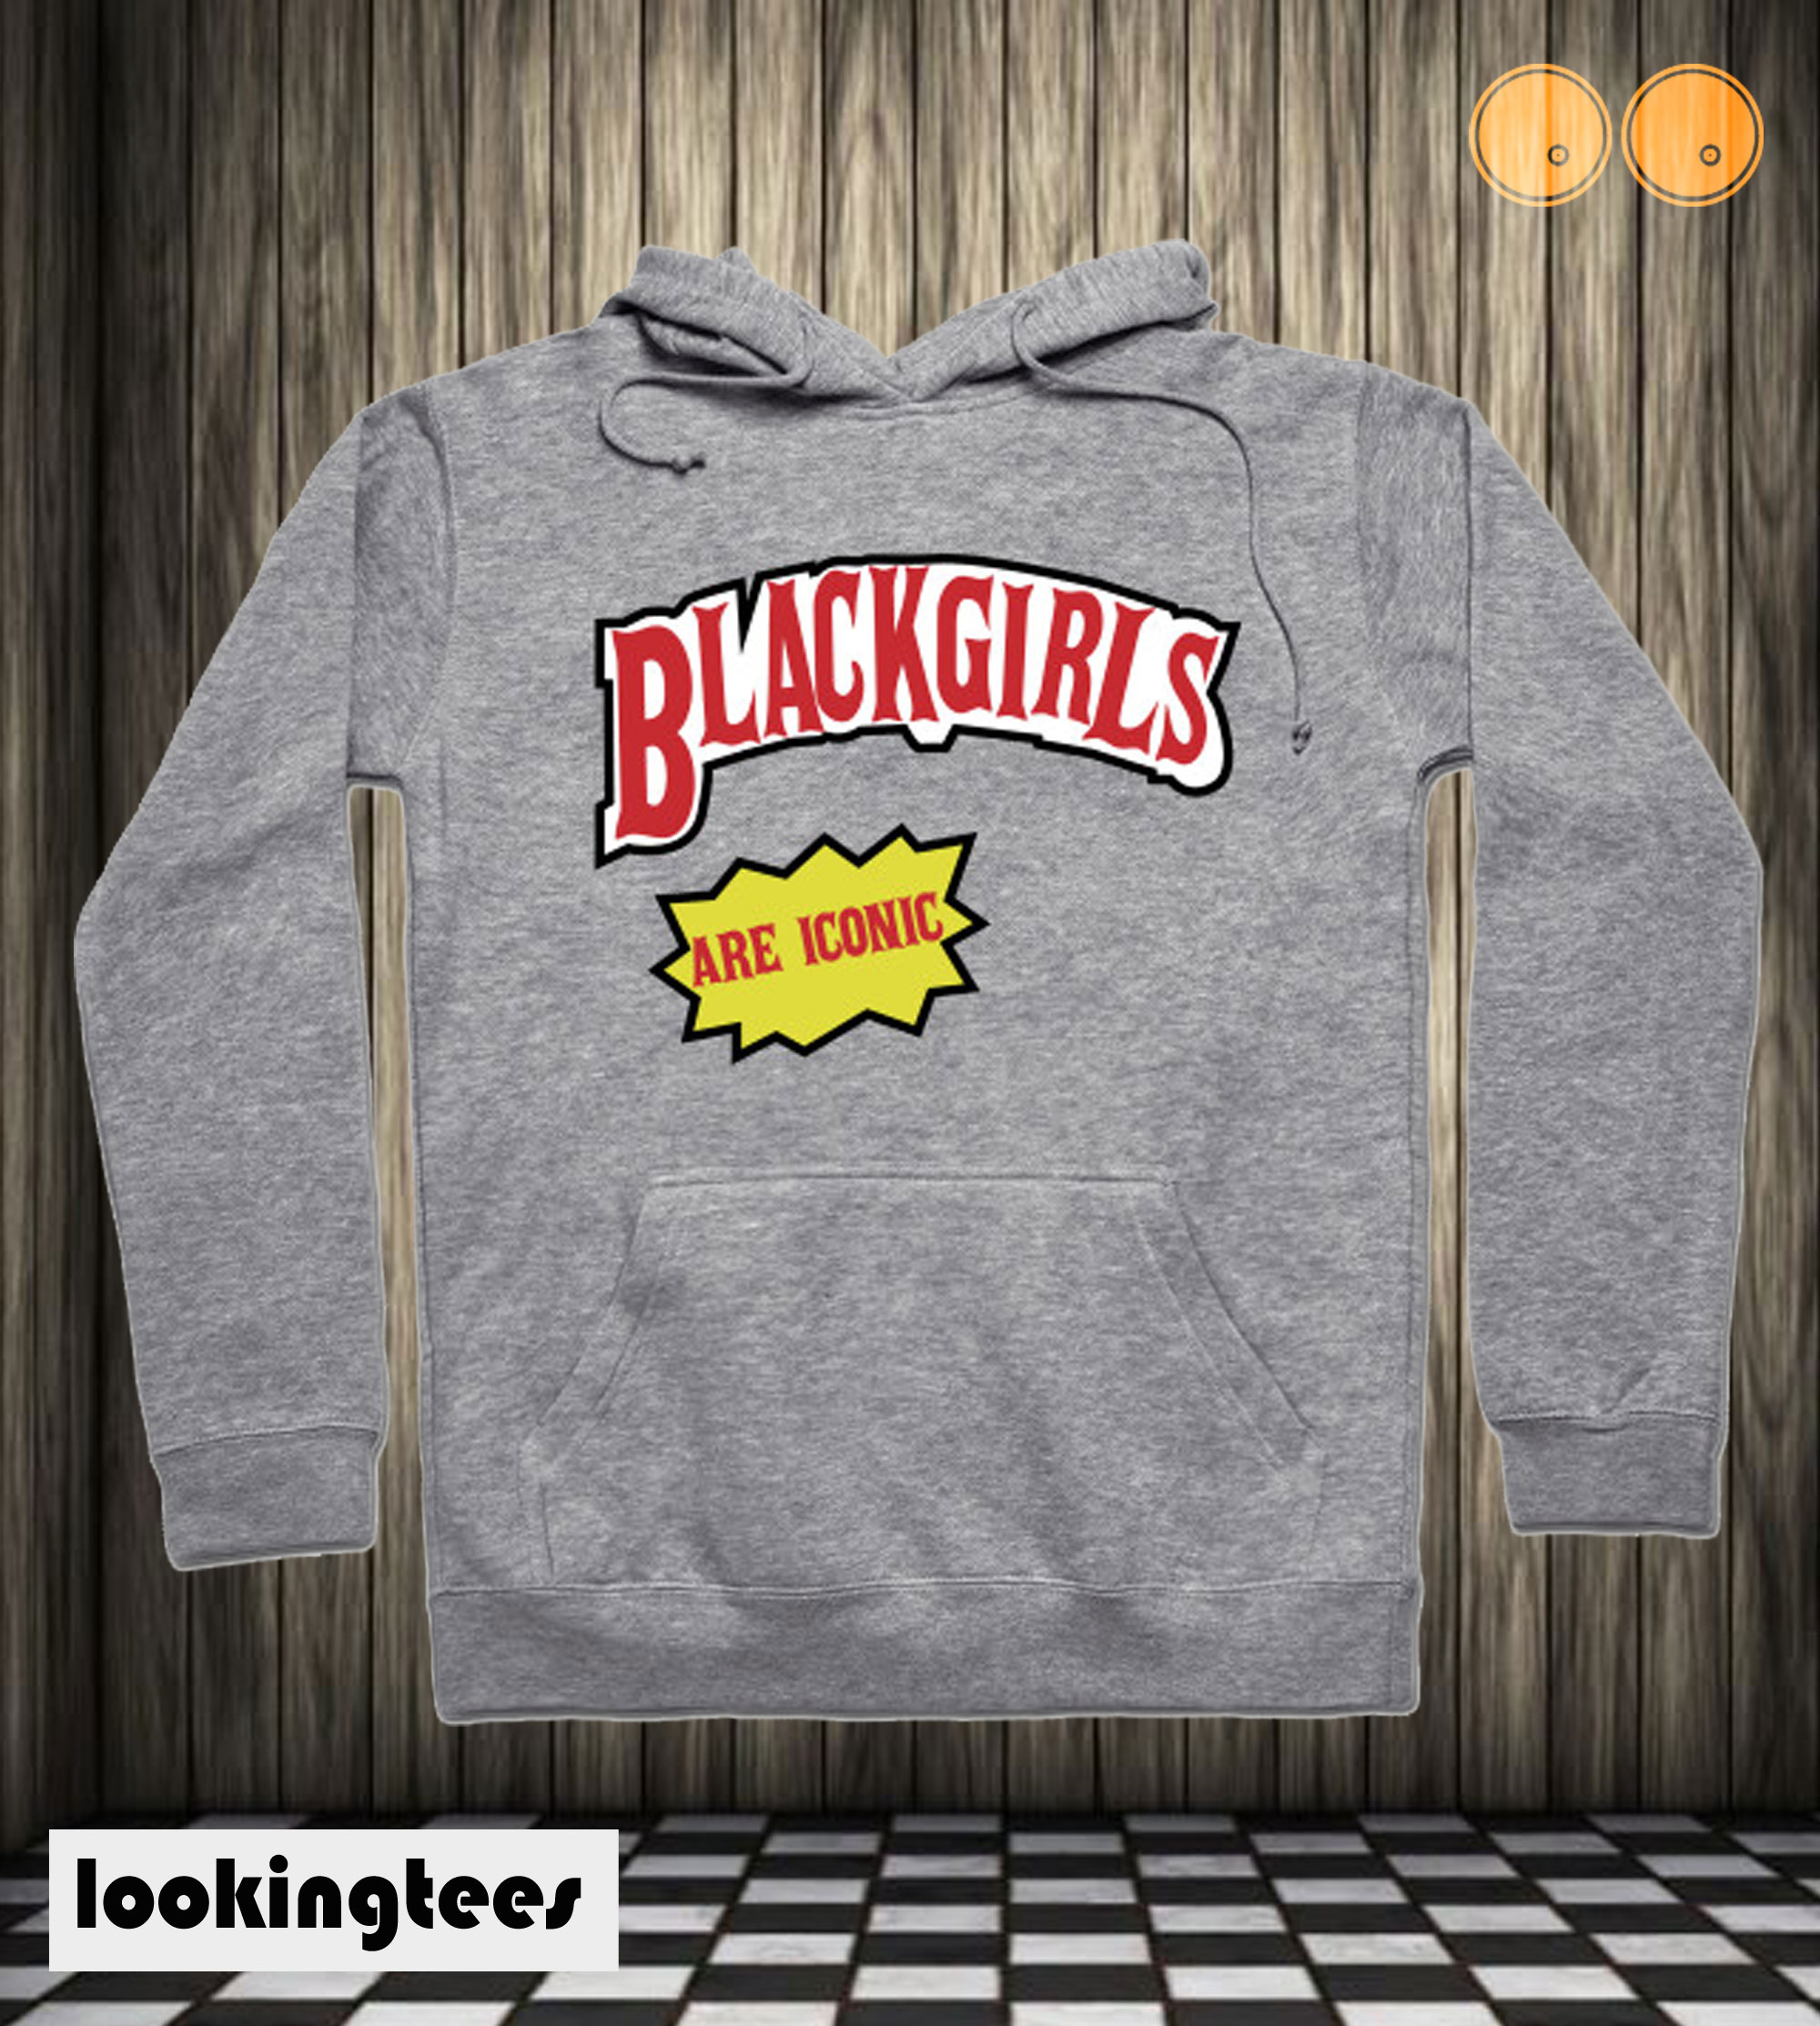 Black Girls are iconic Hoodie